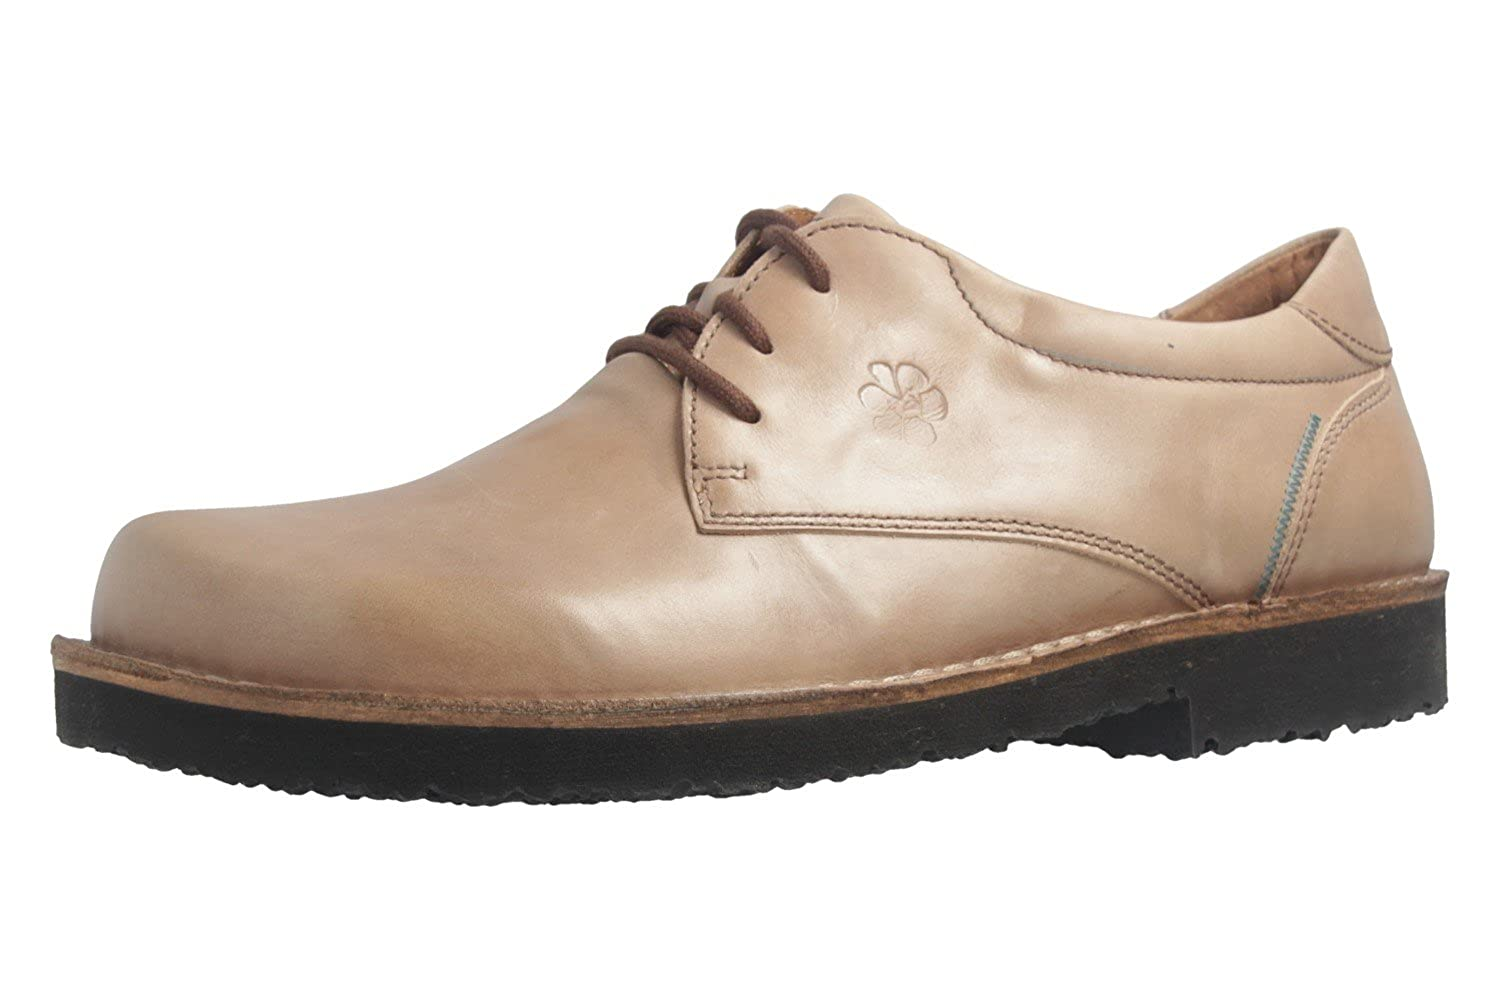 Josef lacets Seibel 84427-887 Madeleine 27 chaussures à lacets chaussures 27 femme Beige 455f564 - conorscully.space